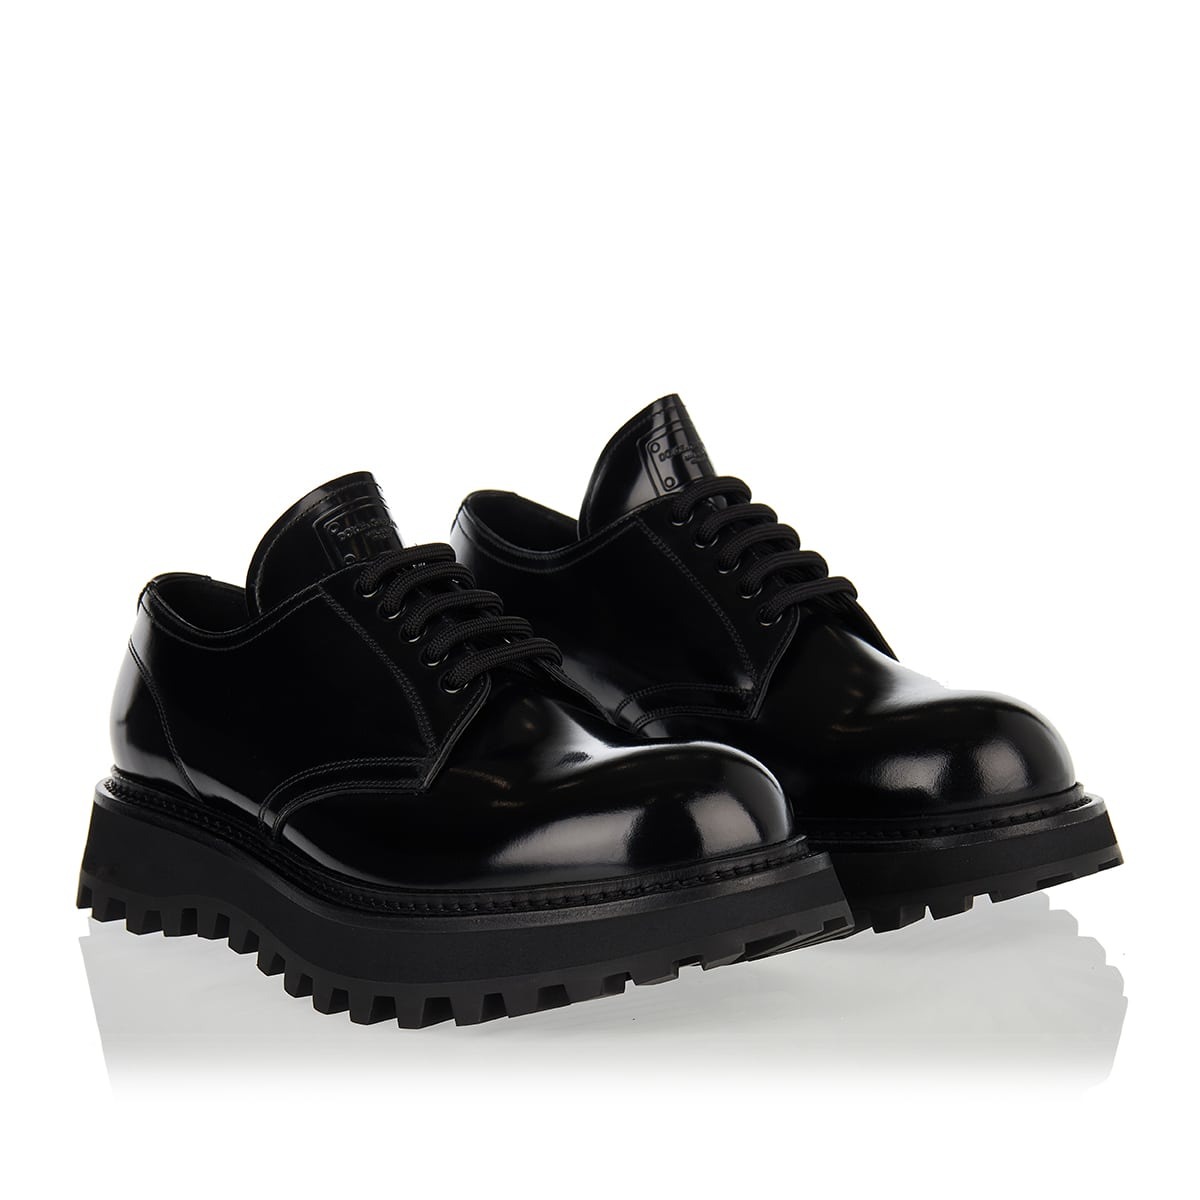 Oversized-sole derby shoes